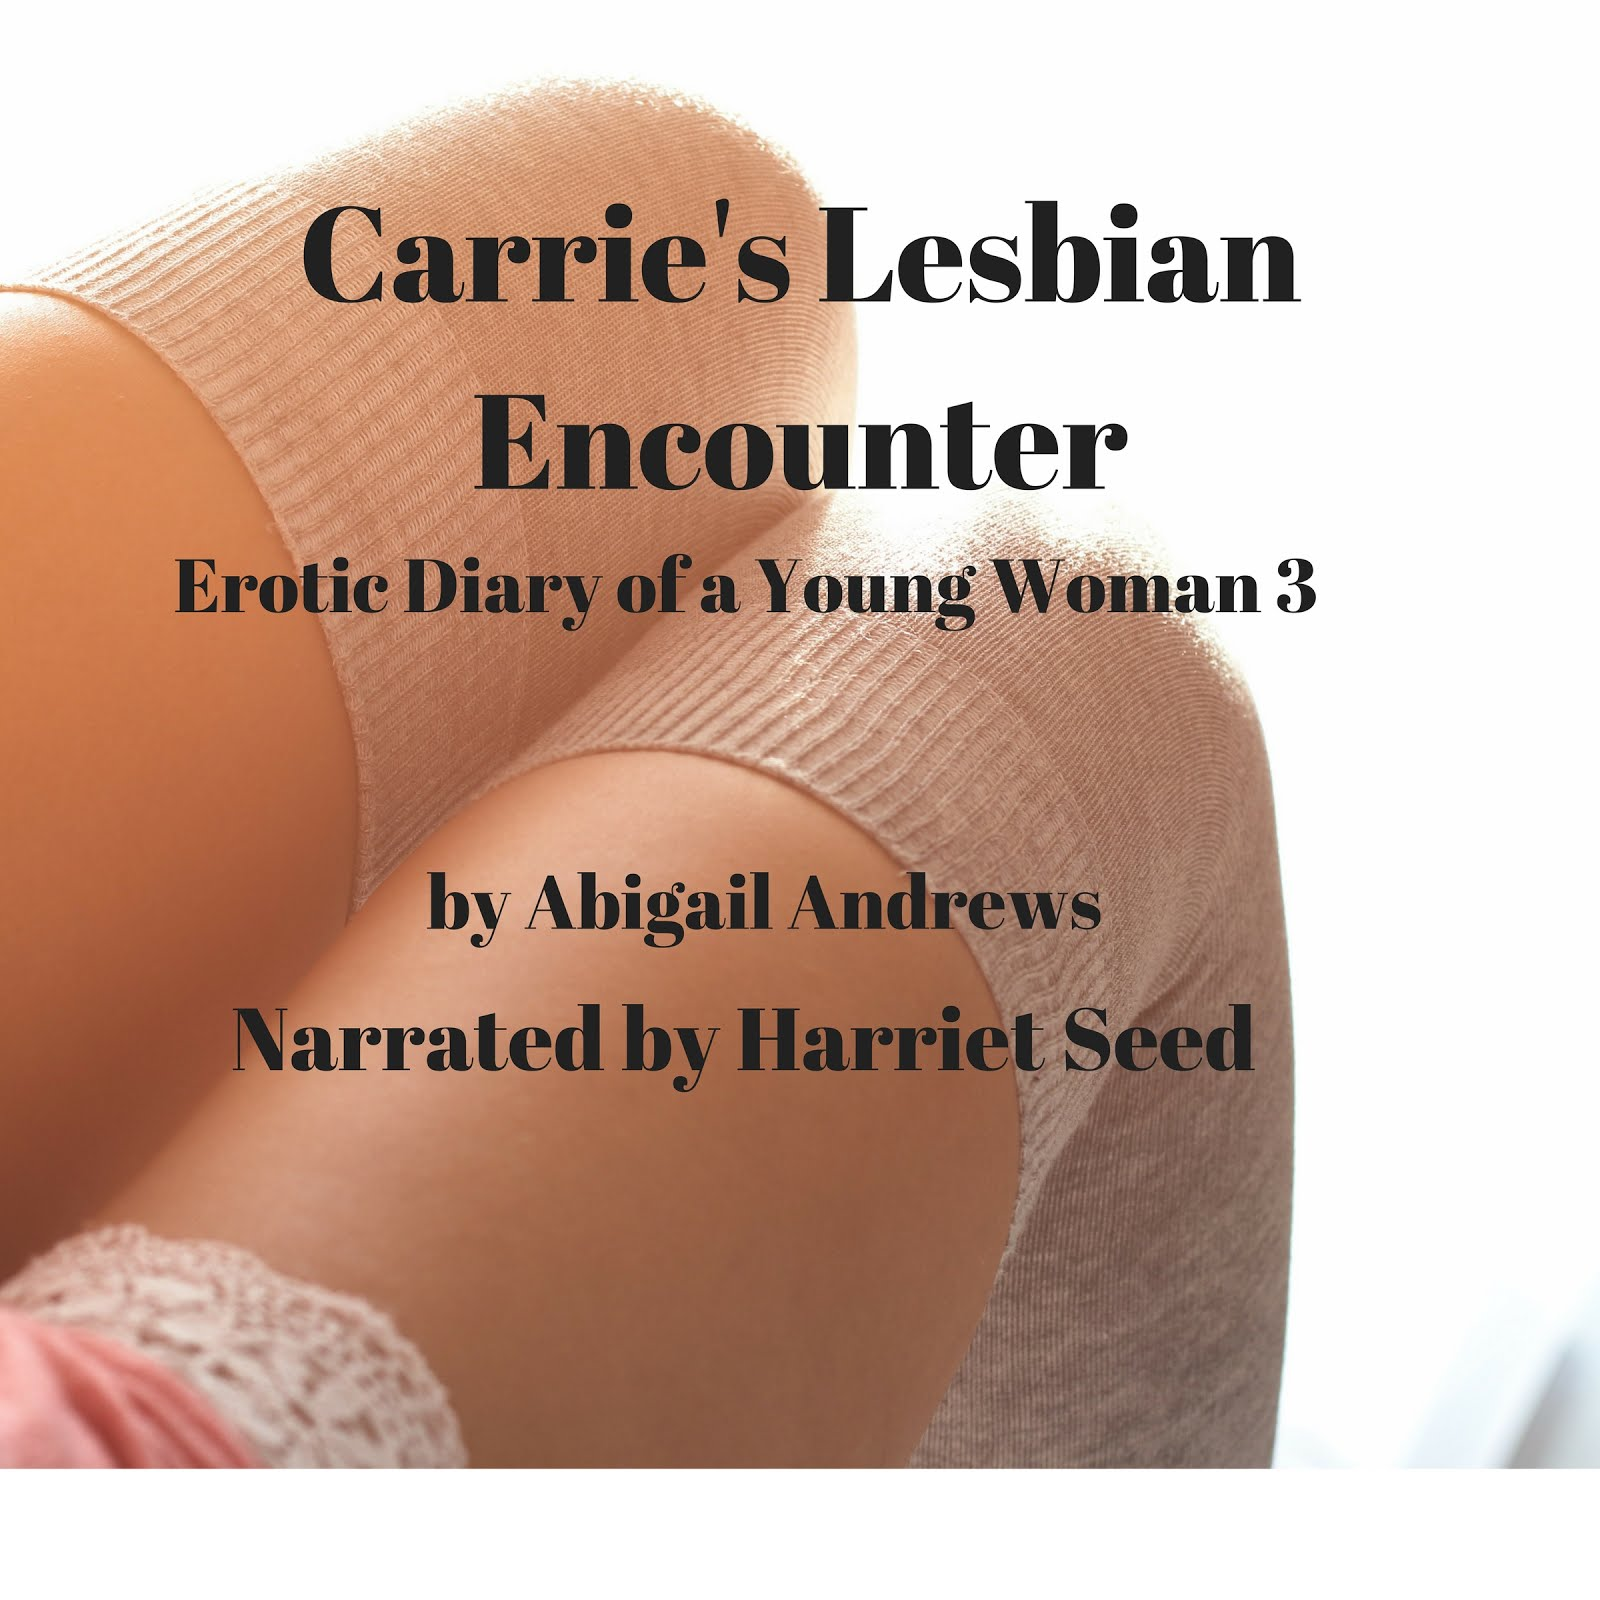 Carrie's Lesbian Encounter